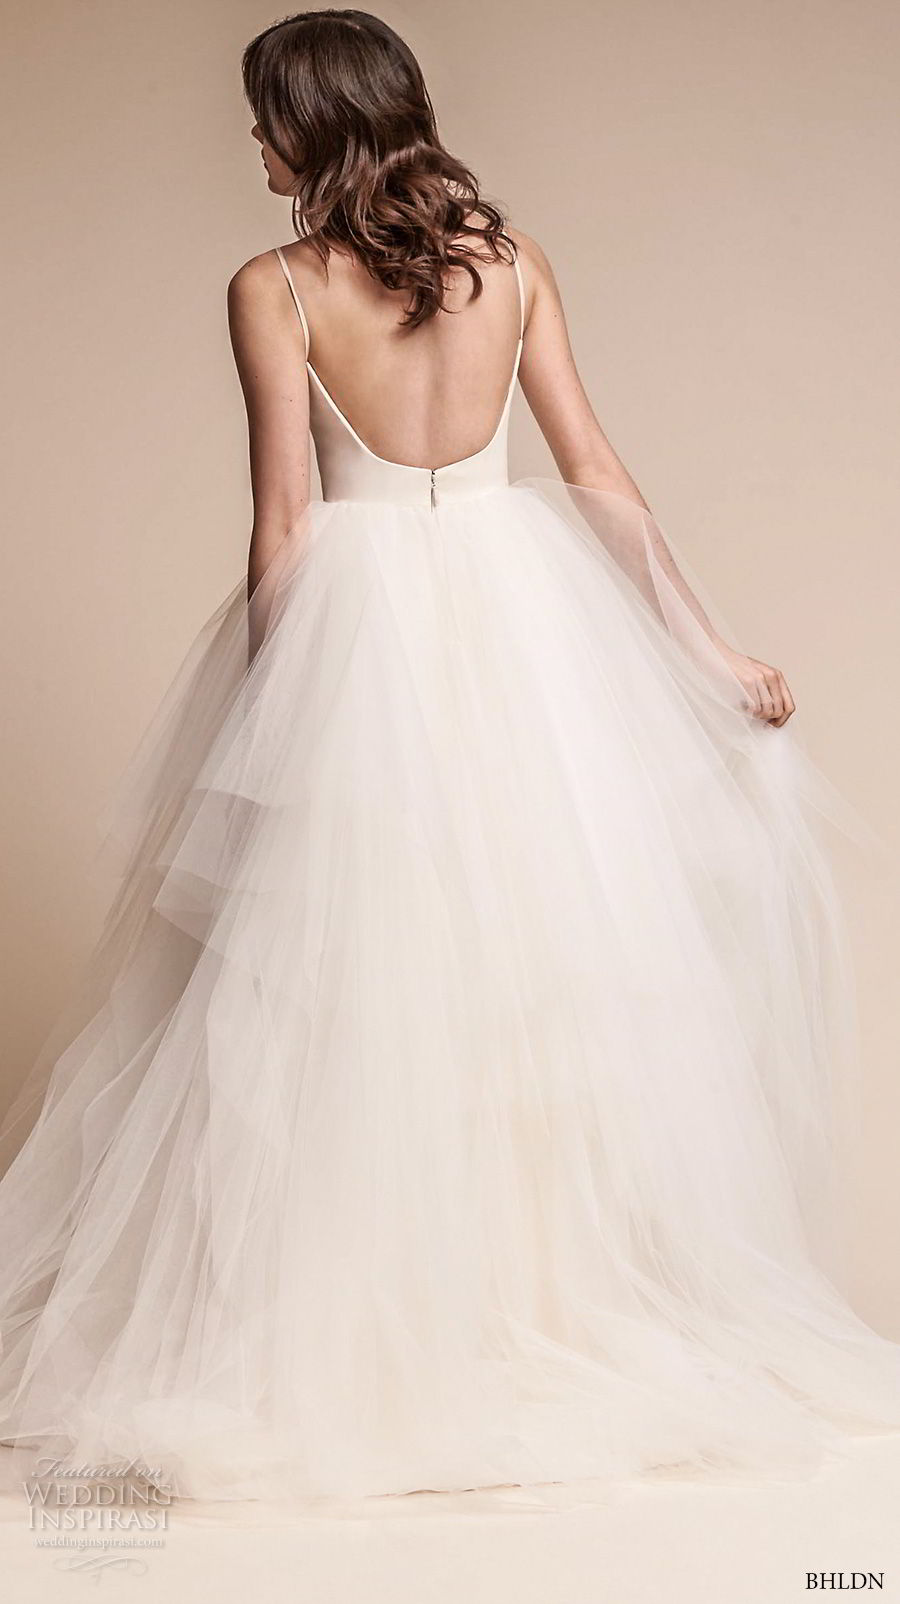 bhldn fall 2017  americana bridal spaghetti strap sweetheart neckline simple bodice tulle skirt romantic ball gown wedding dress open scoop back sweep train (astoria) bv